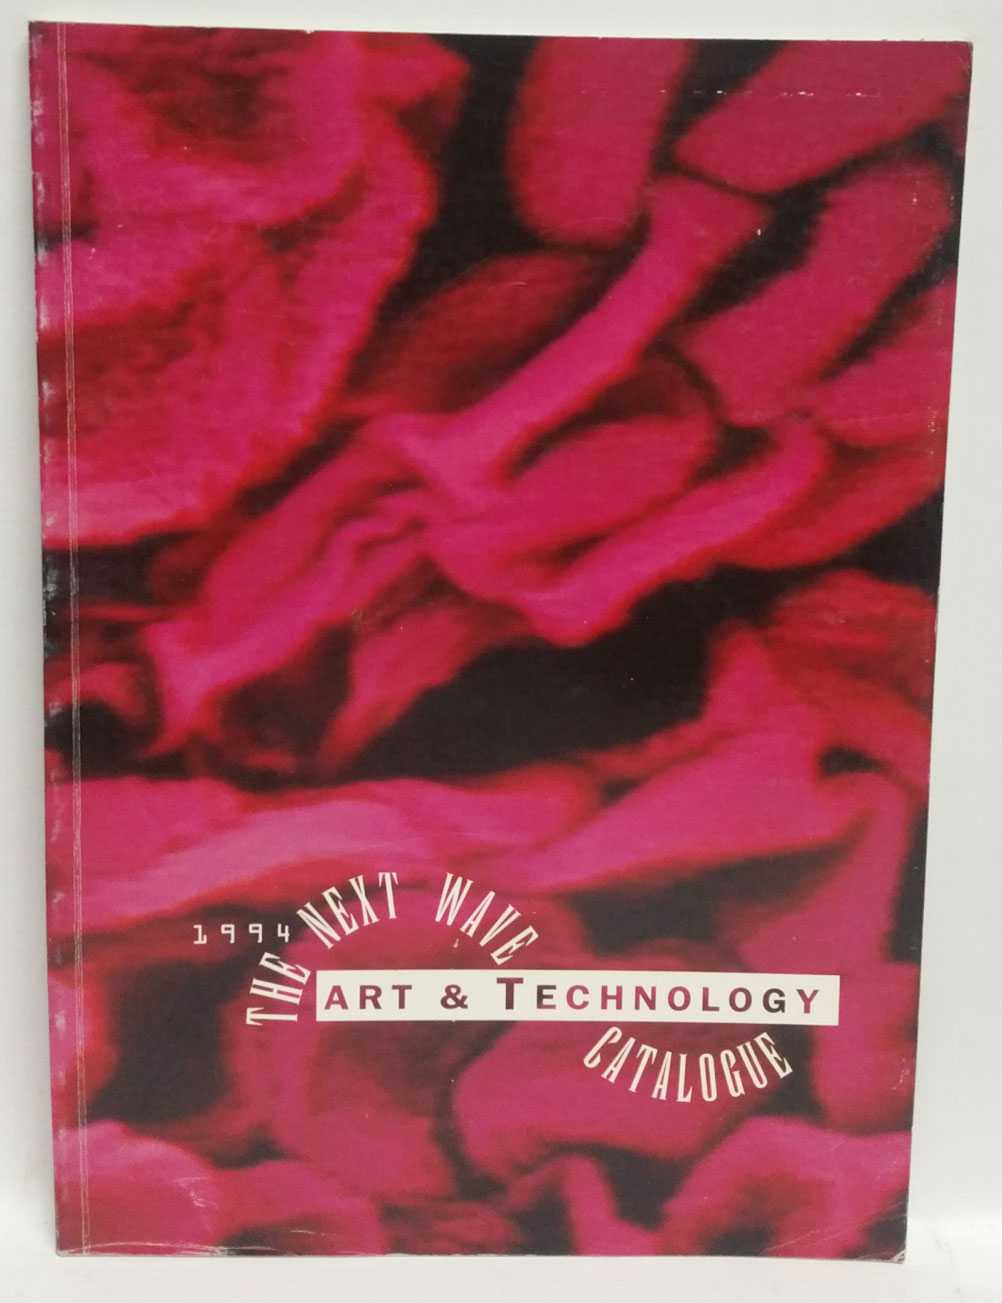 The Next Wave Art & Technology Catalogue, Linda Sproul